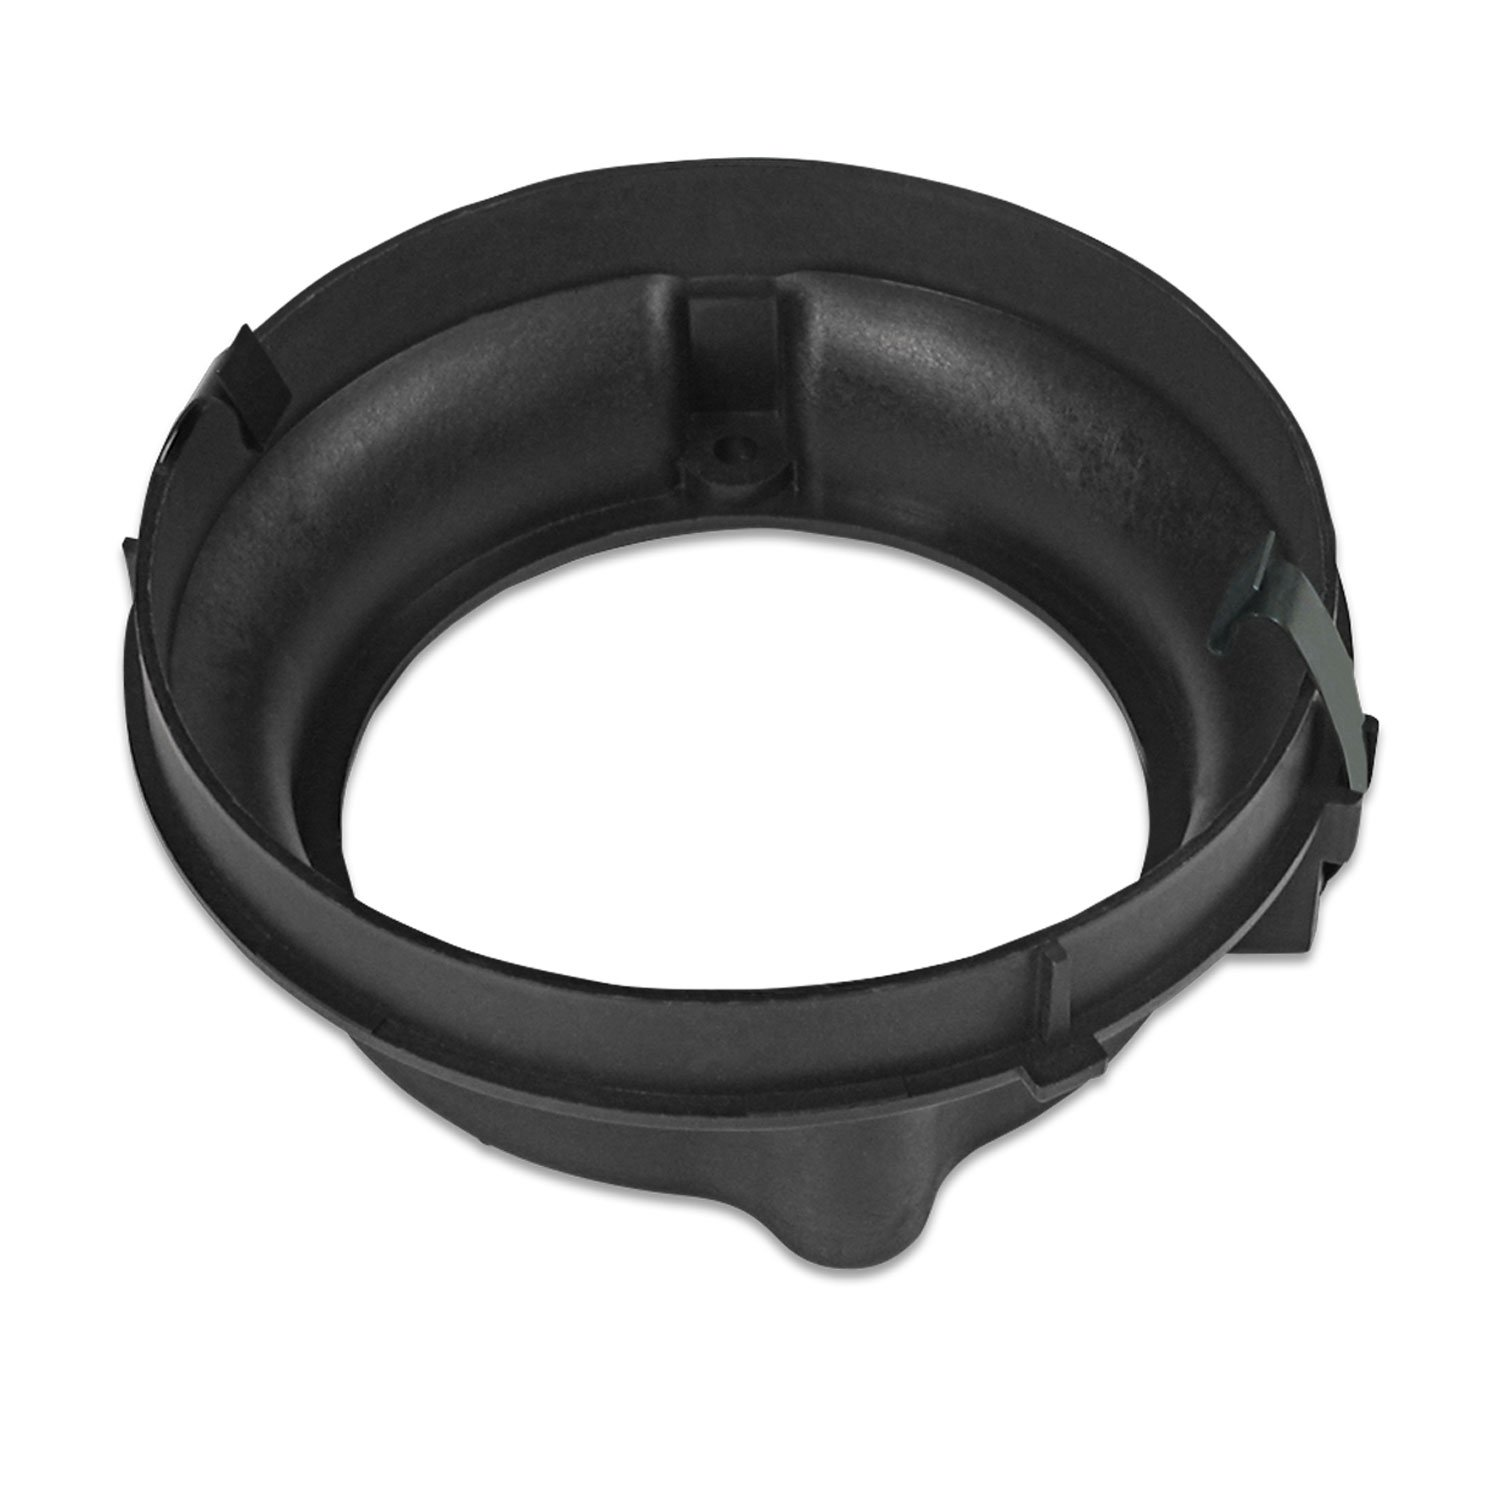 Pro Mag Replacement Cap Ring fits PN's 8130, 8140